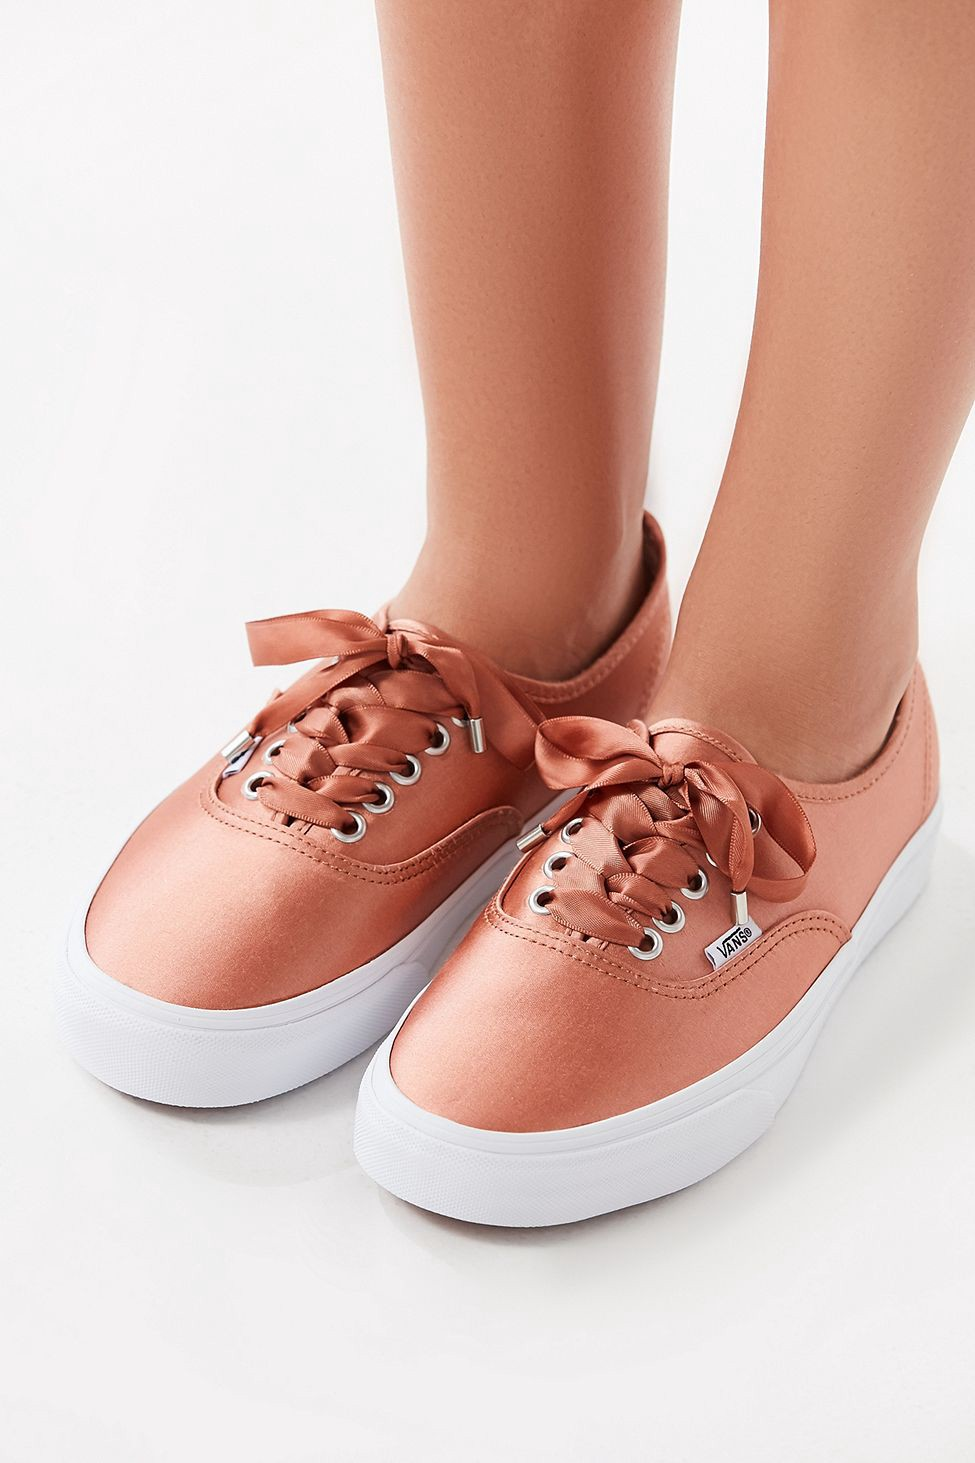 Urban Outfitters Vans Satin Lux Authentic Sneaker - Rose W 10 M 8.5 ... 80d93bb22